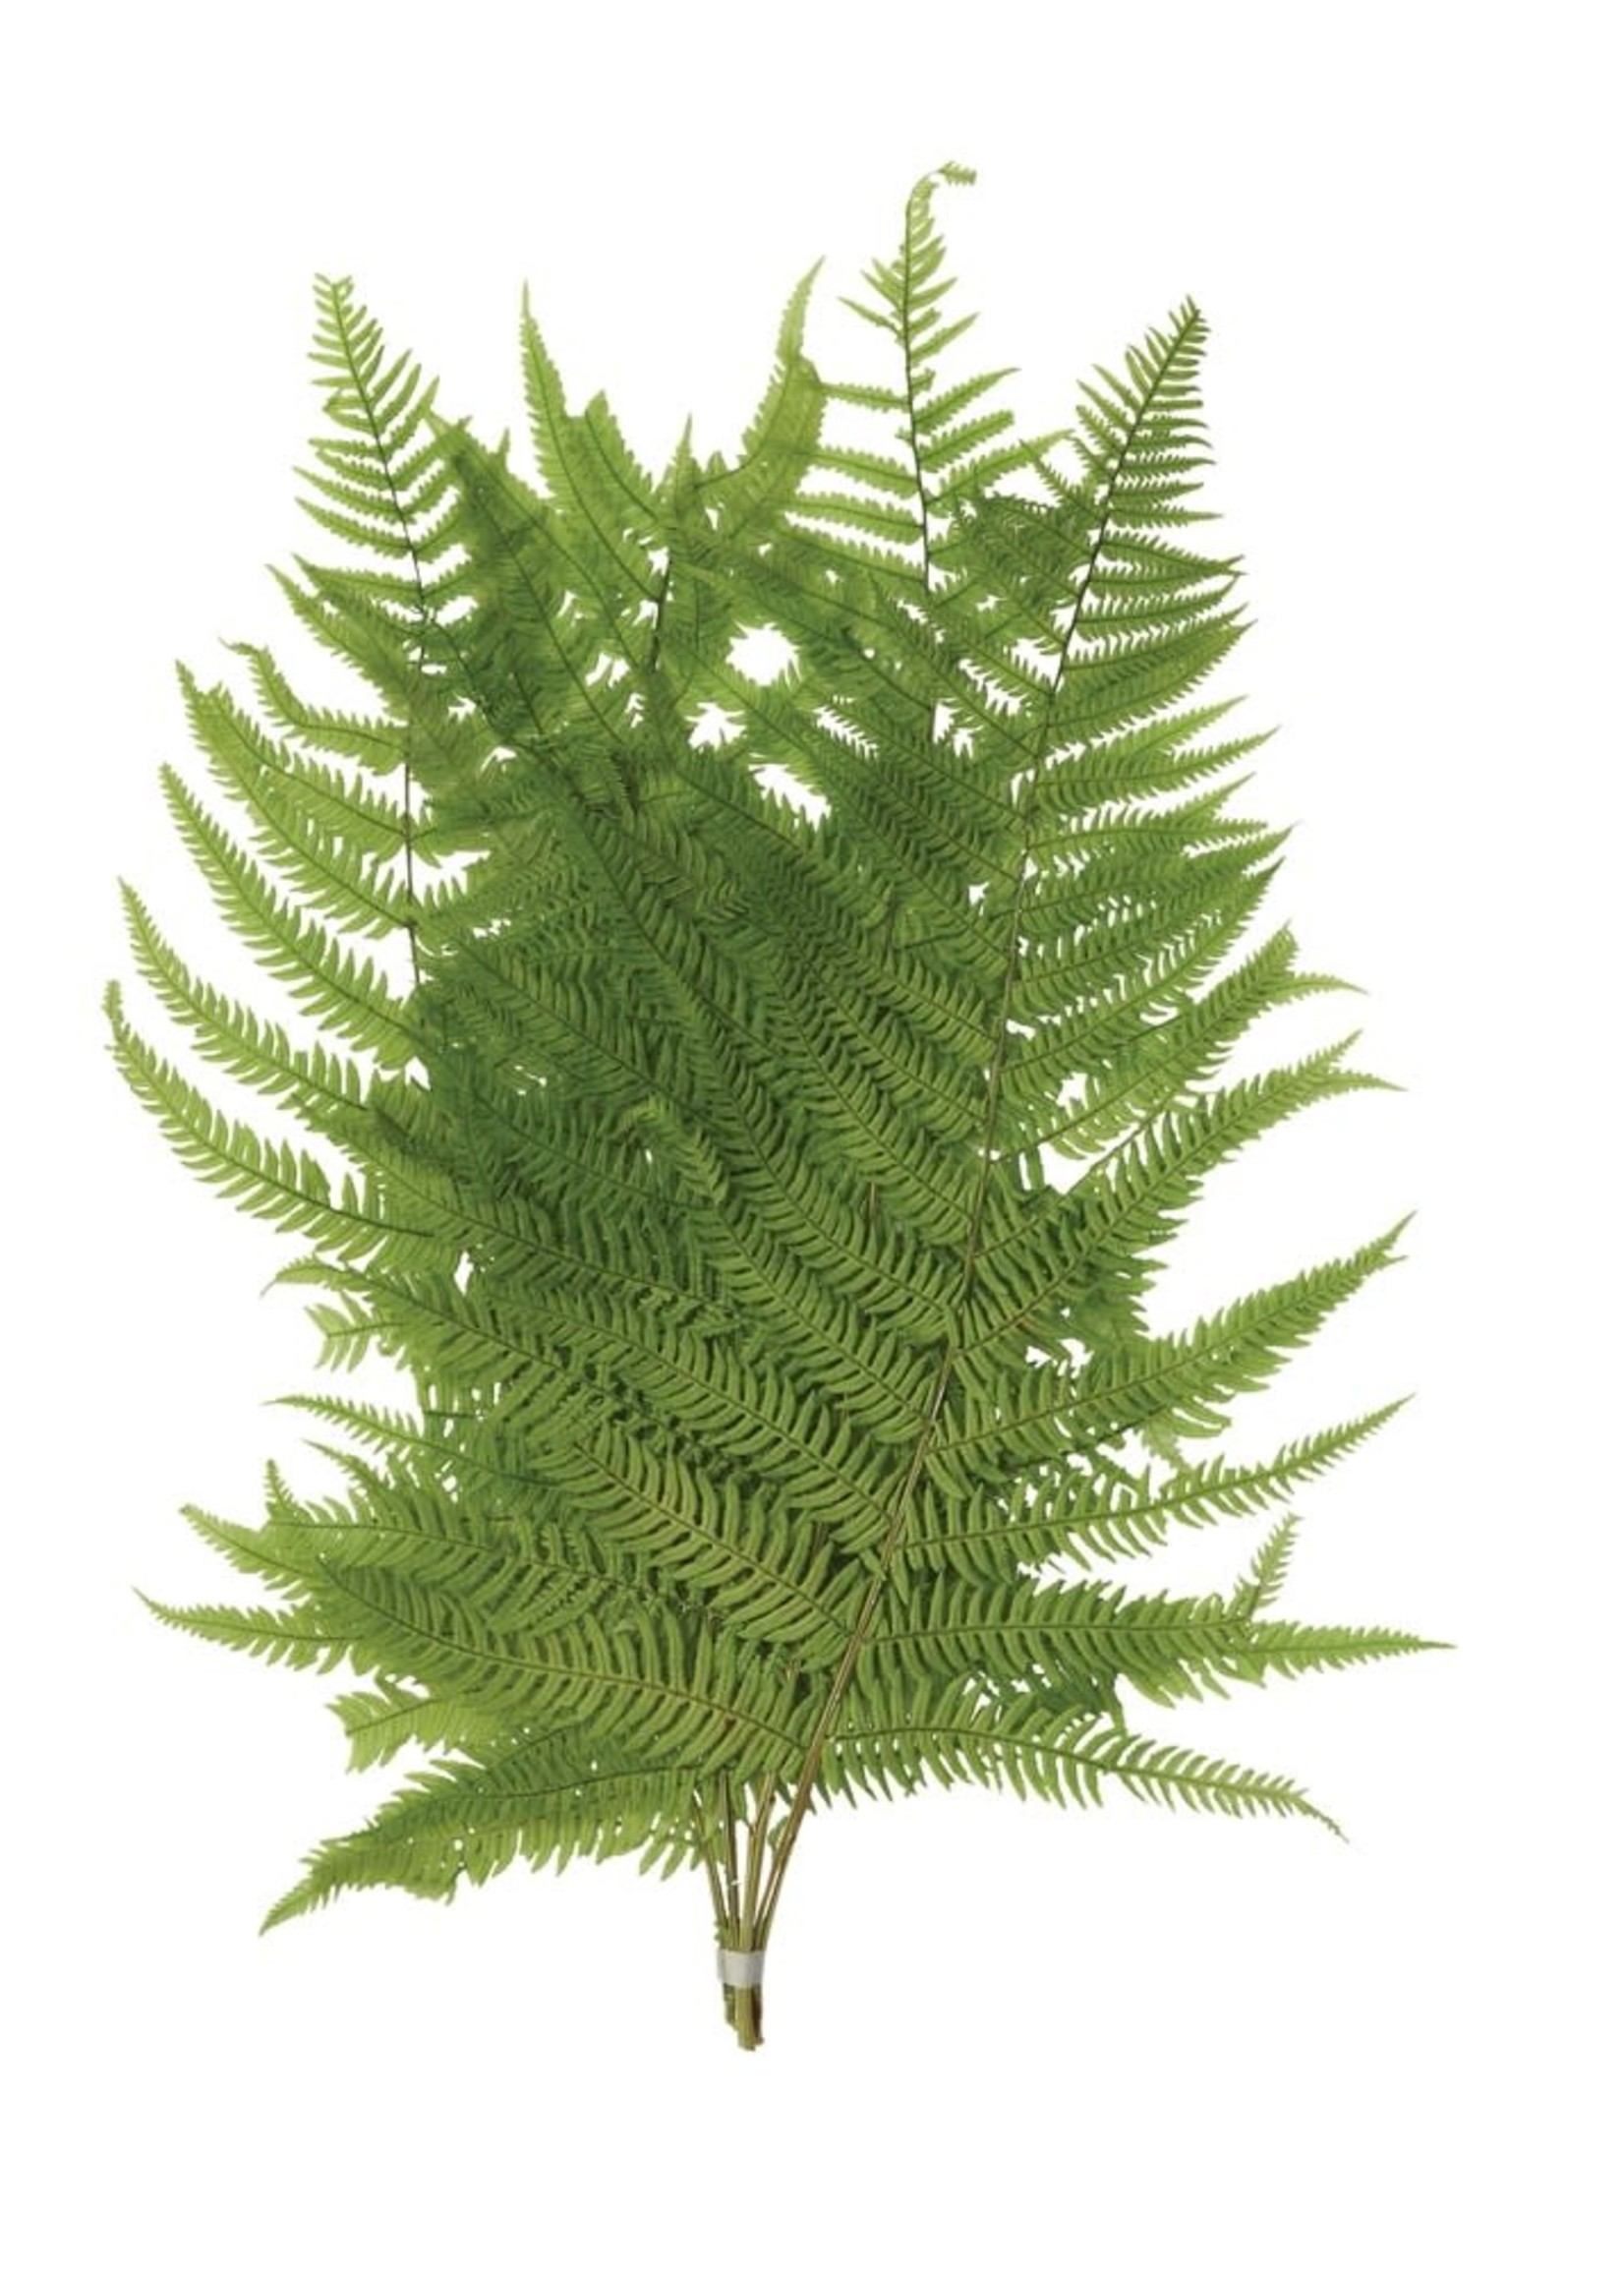 """16""""H Dried Natural Fern Leaf in Bag, Green (Contains 5 Pieces)"""